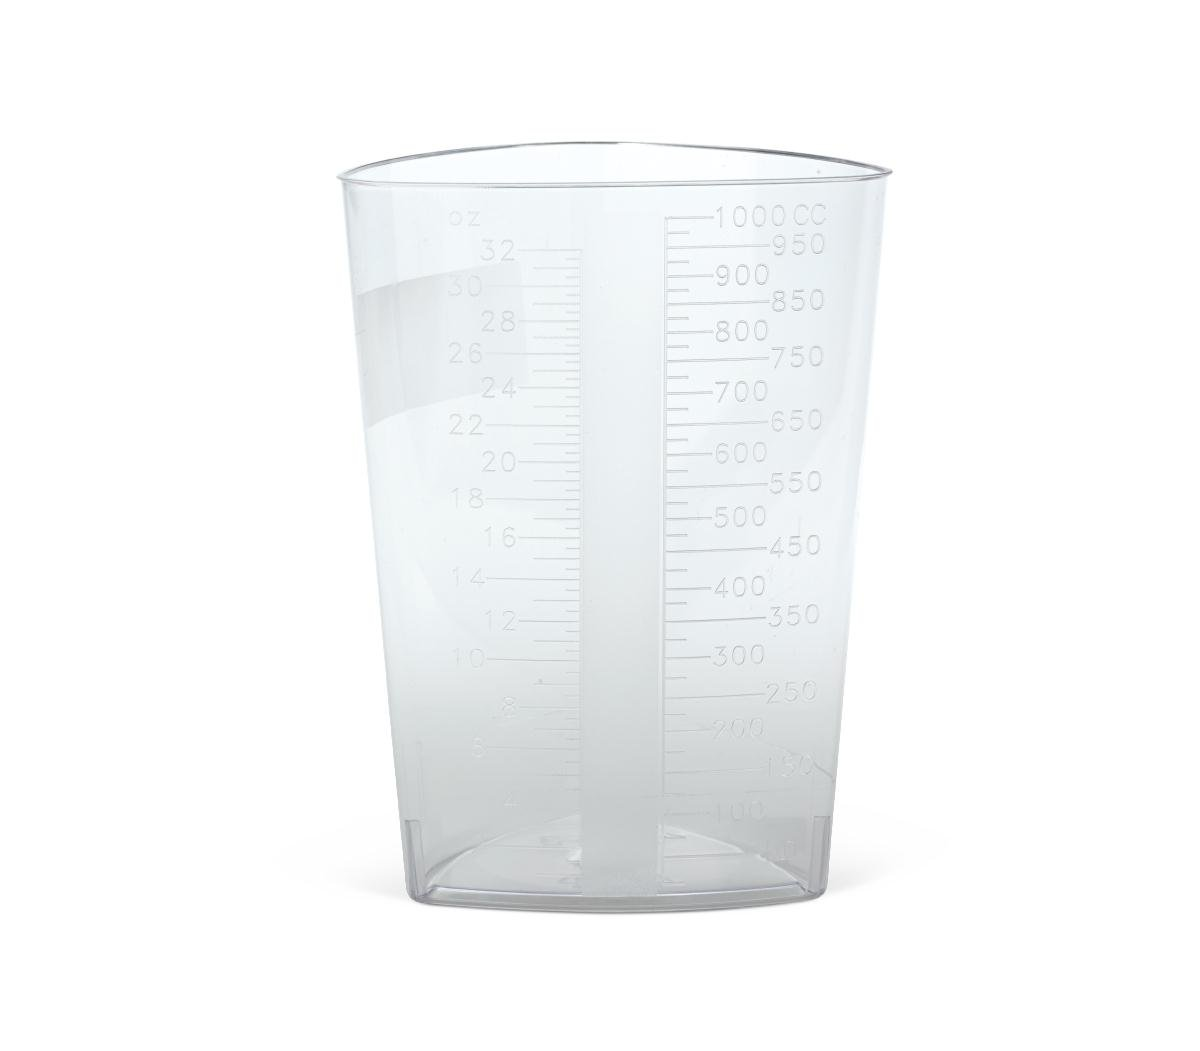 Medline DYND80416 Graduated Triangular Intake/Output Containers, Clear, 32 oz (Pack of 200)